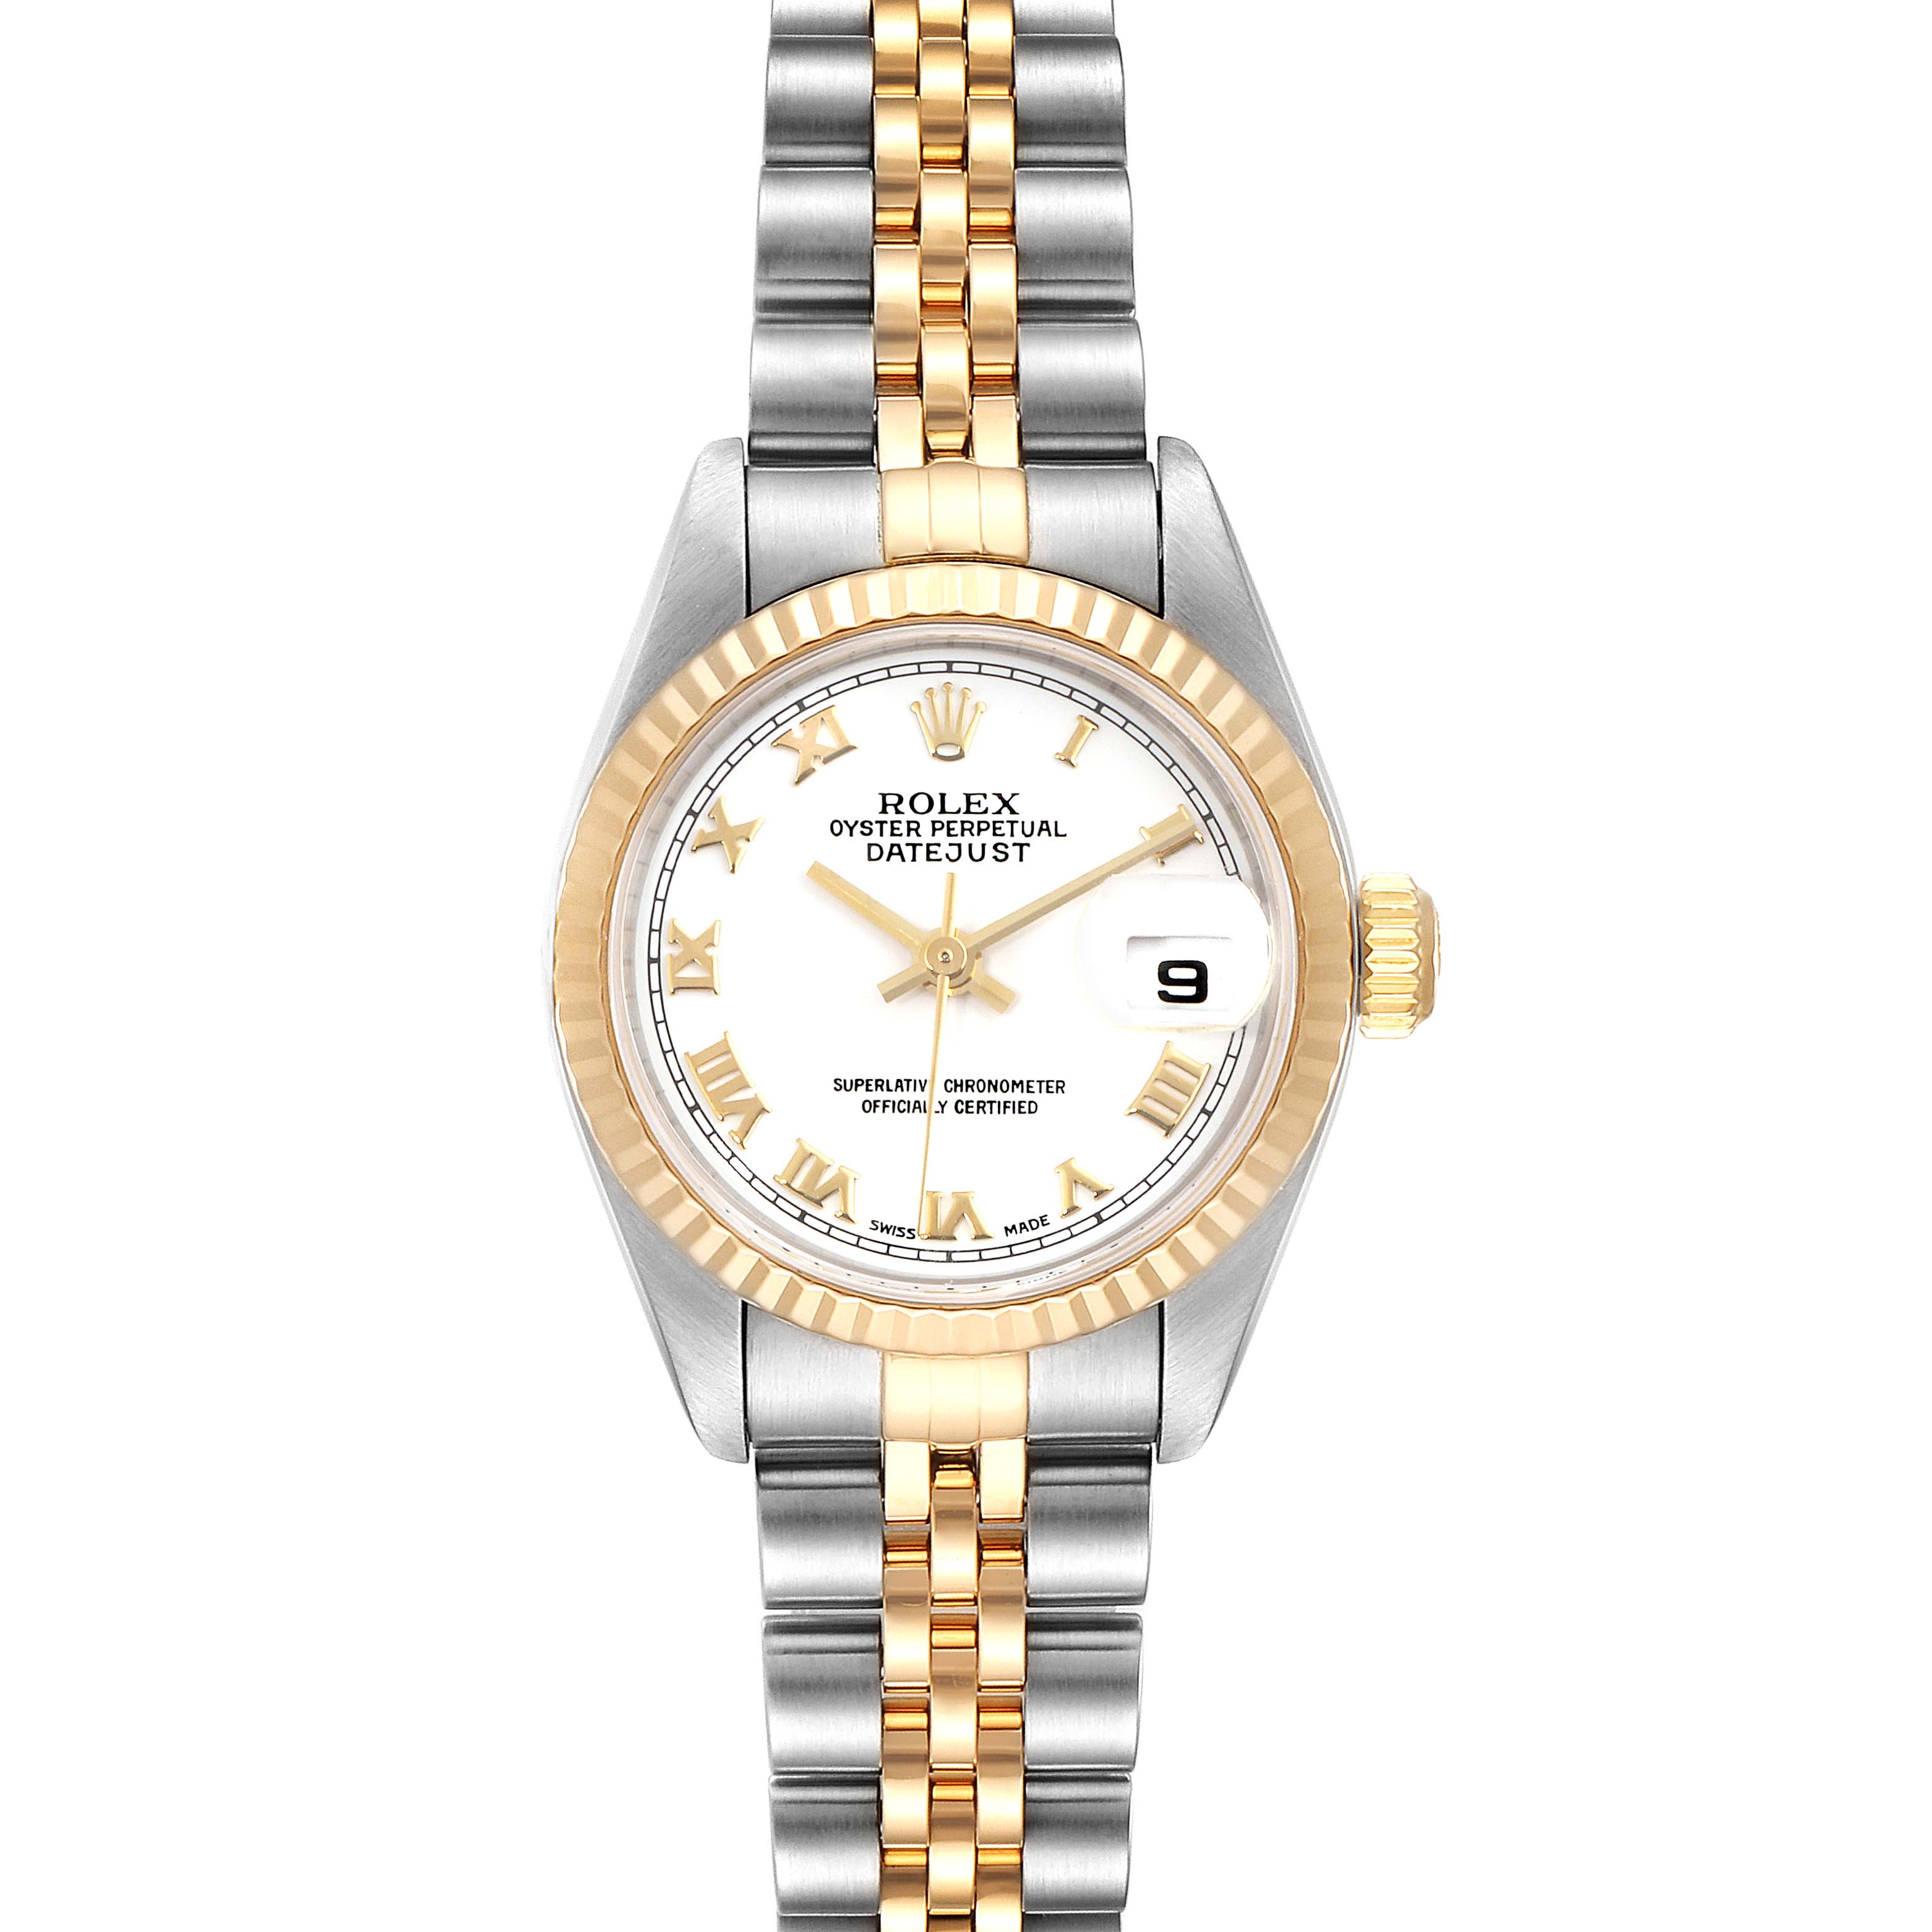 Photo of Rolex Datejust 26 Steel Yellow Gold White Dial Ladies Watch 79173 Box Papers